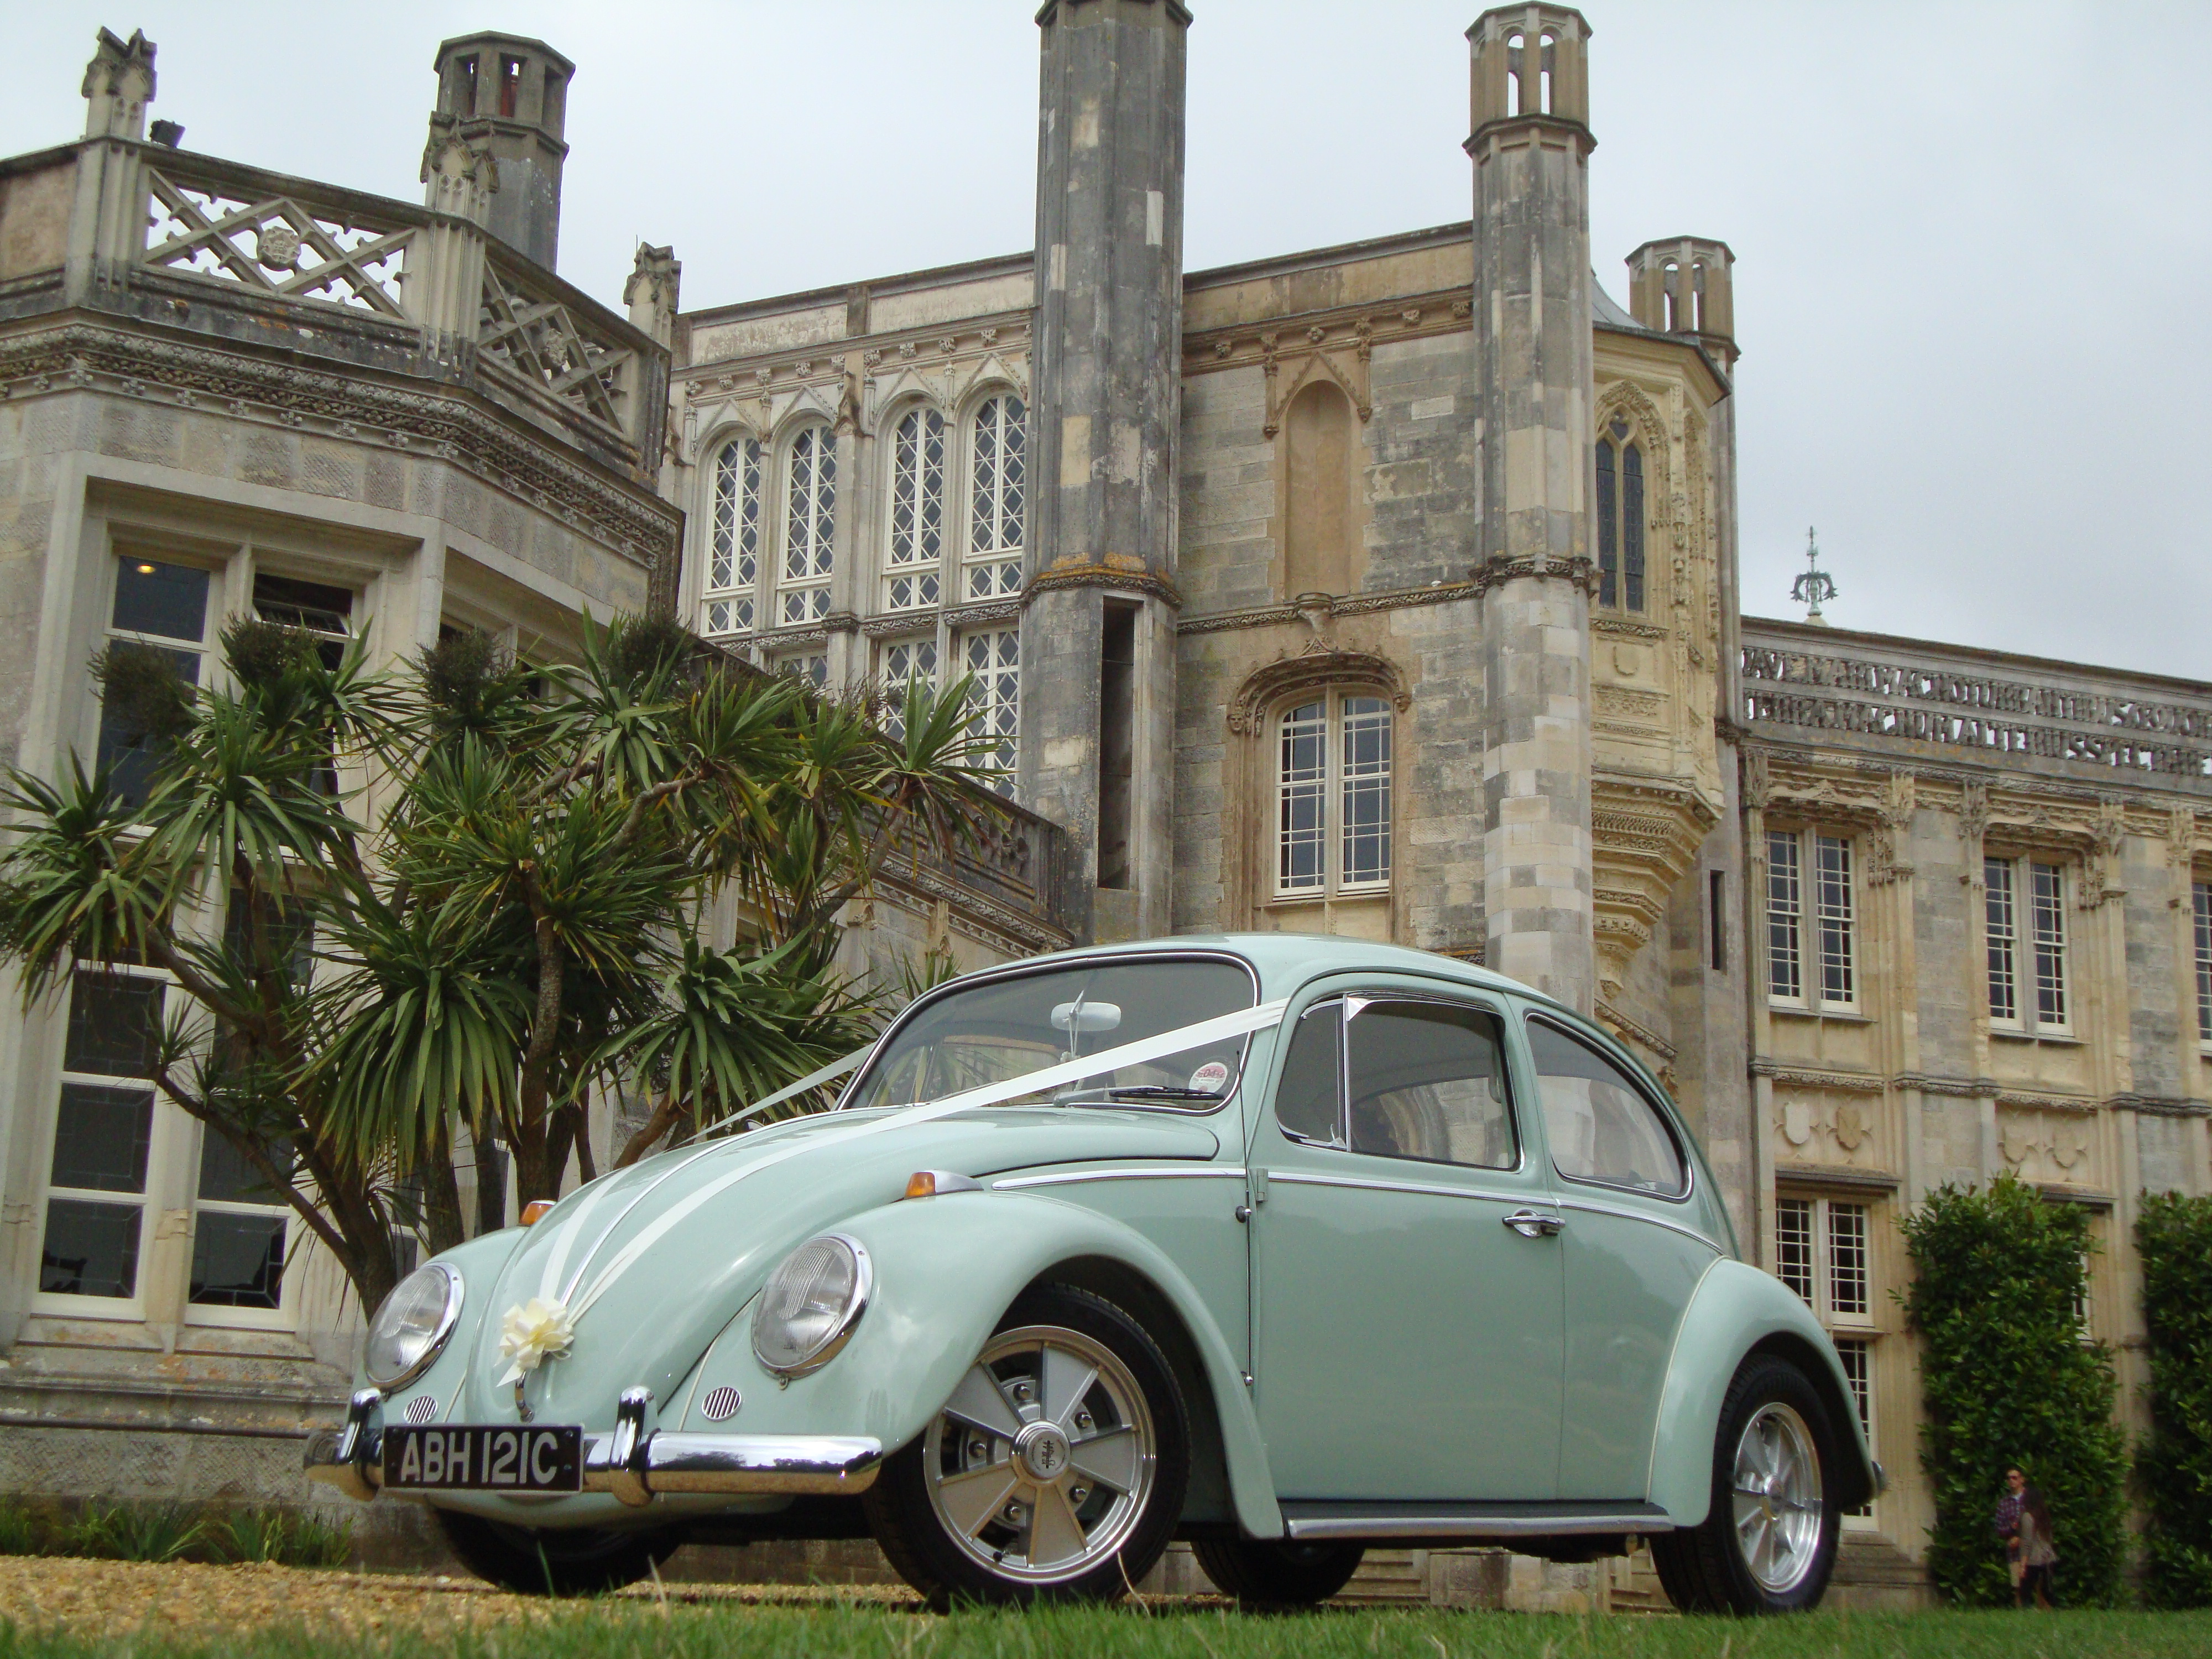 Dorset Dubhire S New Addition Lilah The 1965 Volkswagen